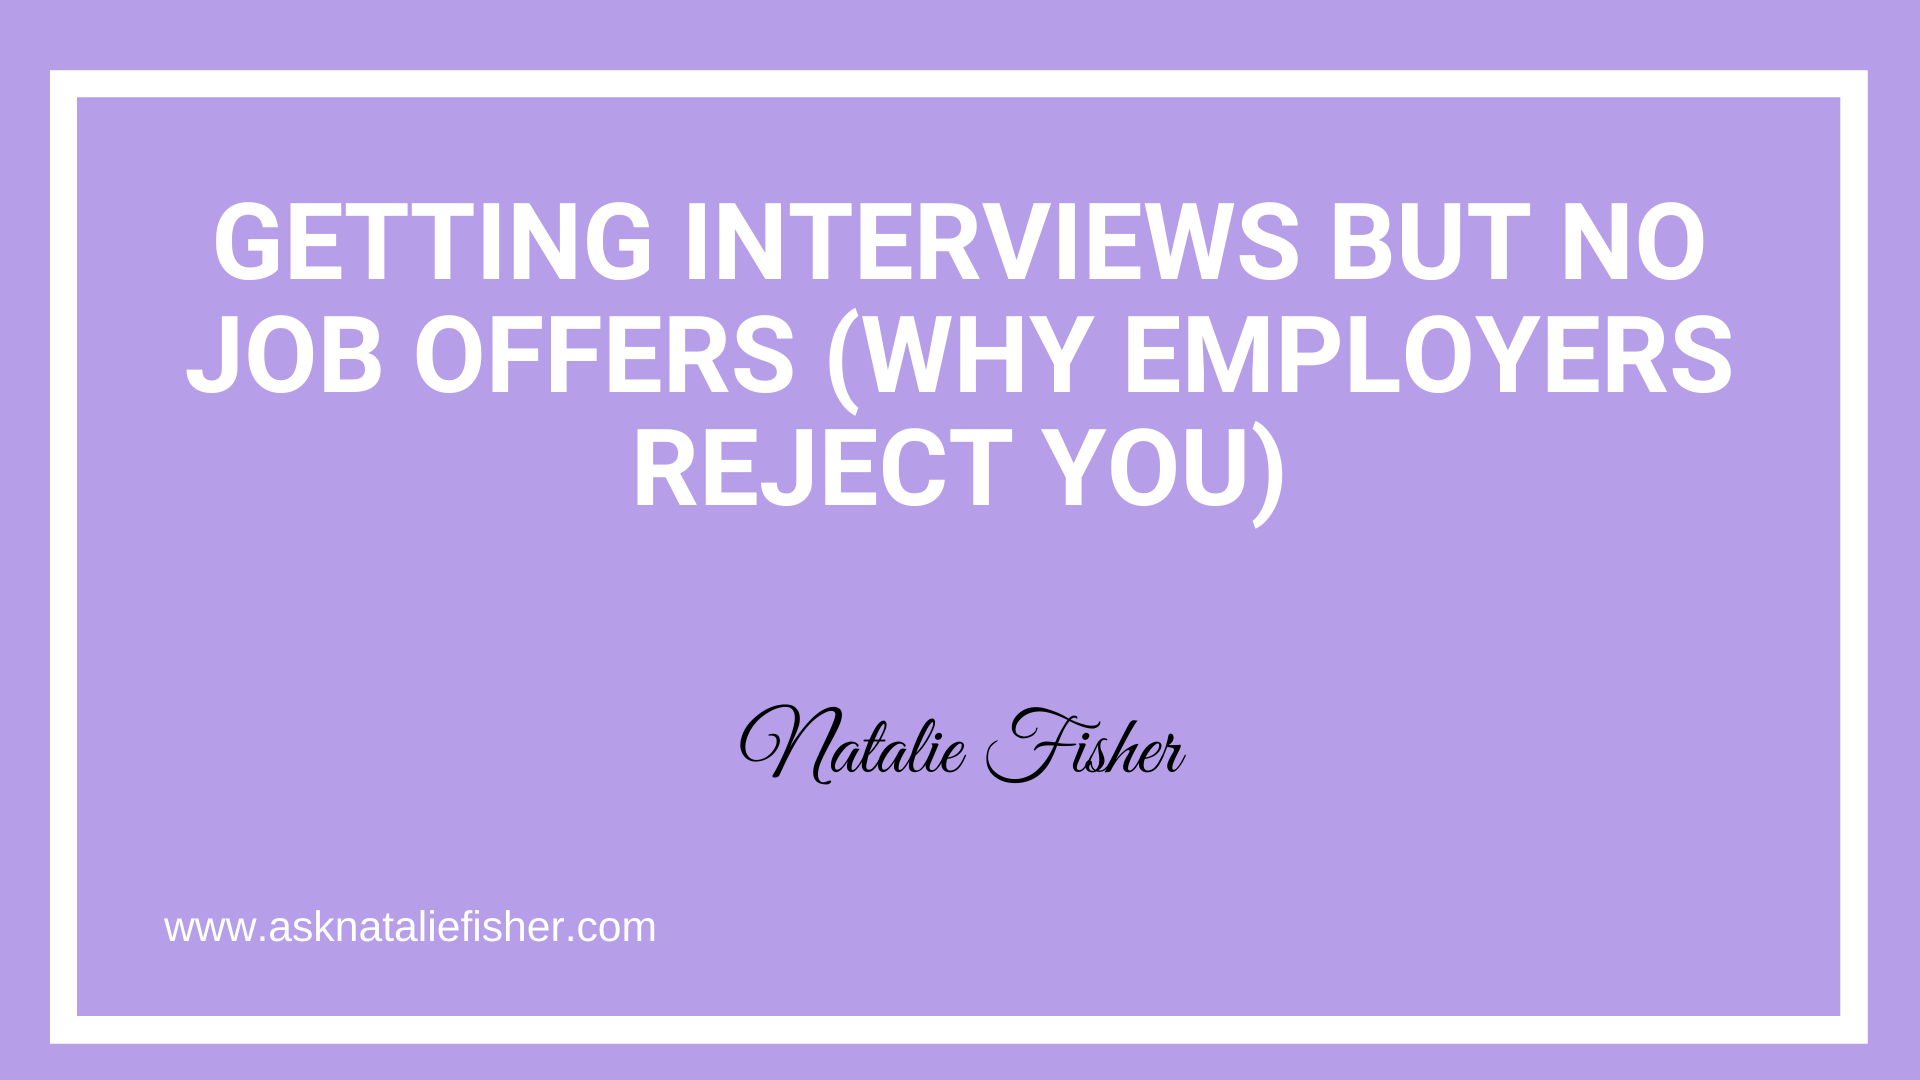 Getting Interviews But No Job Offers (Why Employers Reject You)